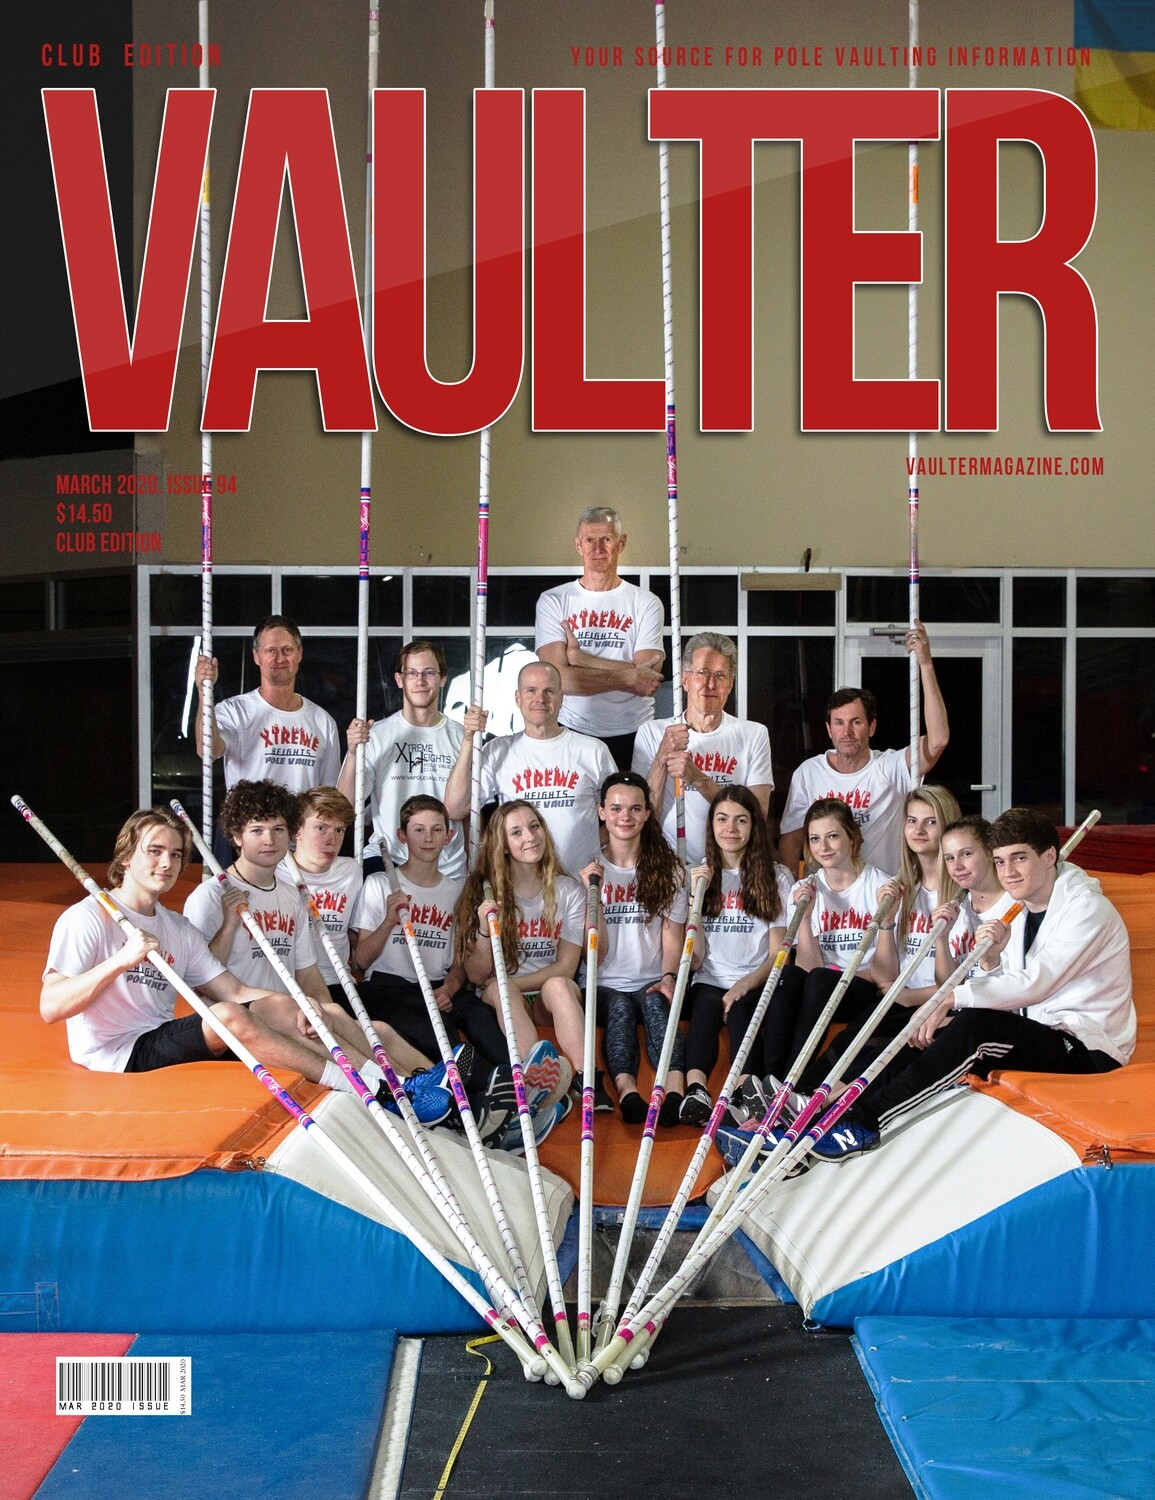 March 2020 Xtreme Heights Pole Vault Club Issue of Vaulter Magazine  U.S. Standard Mail